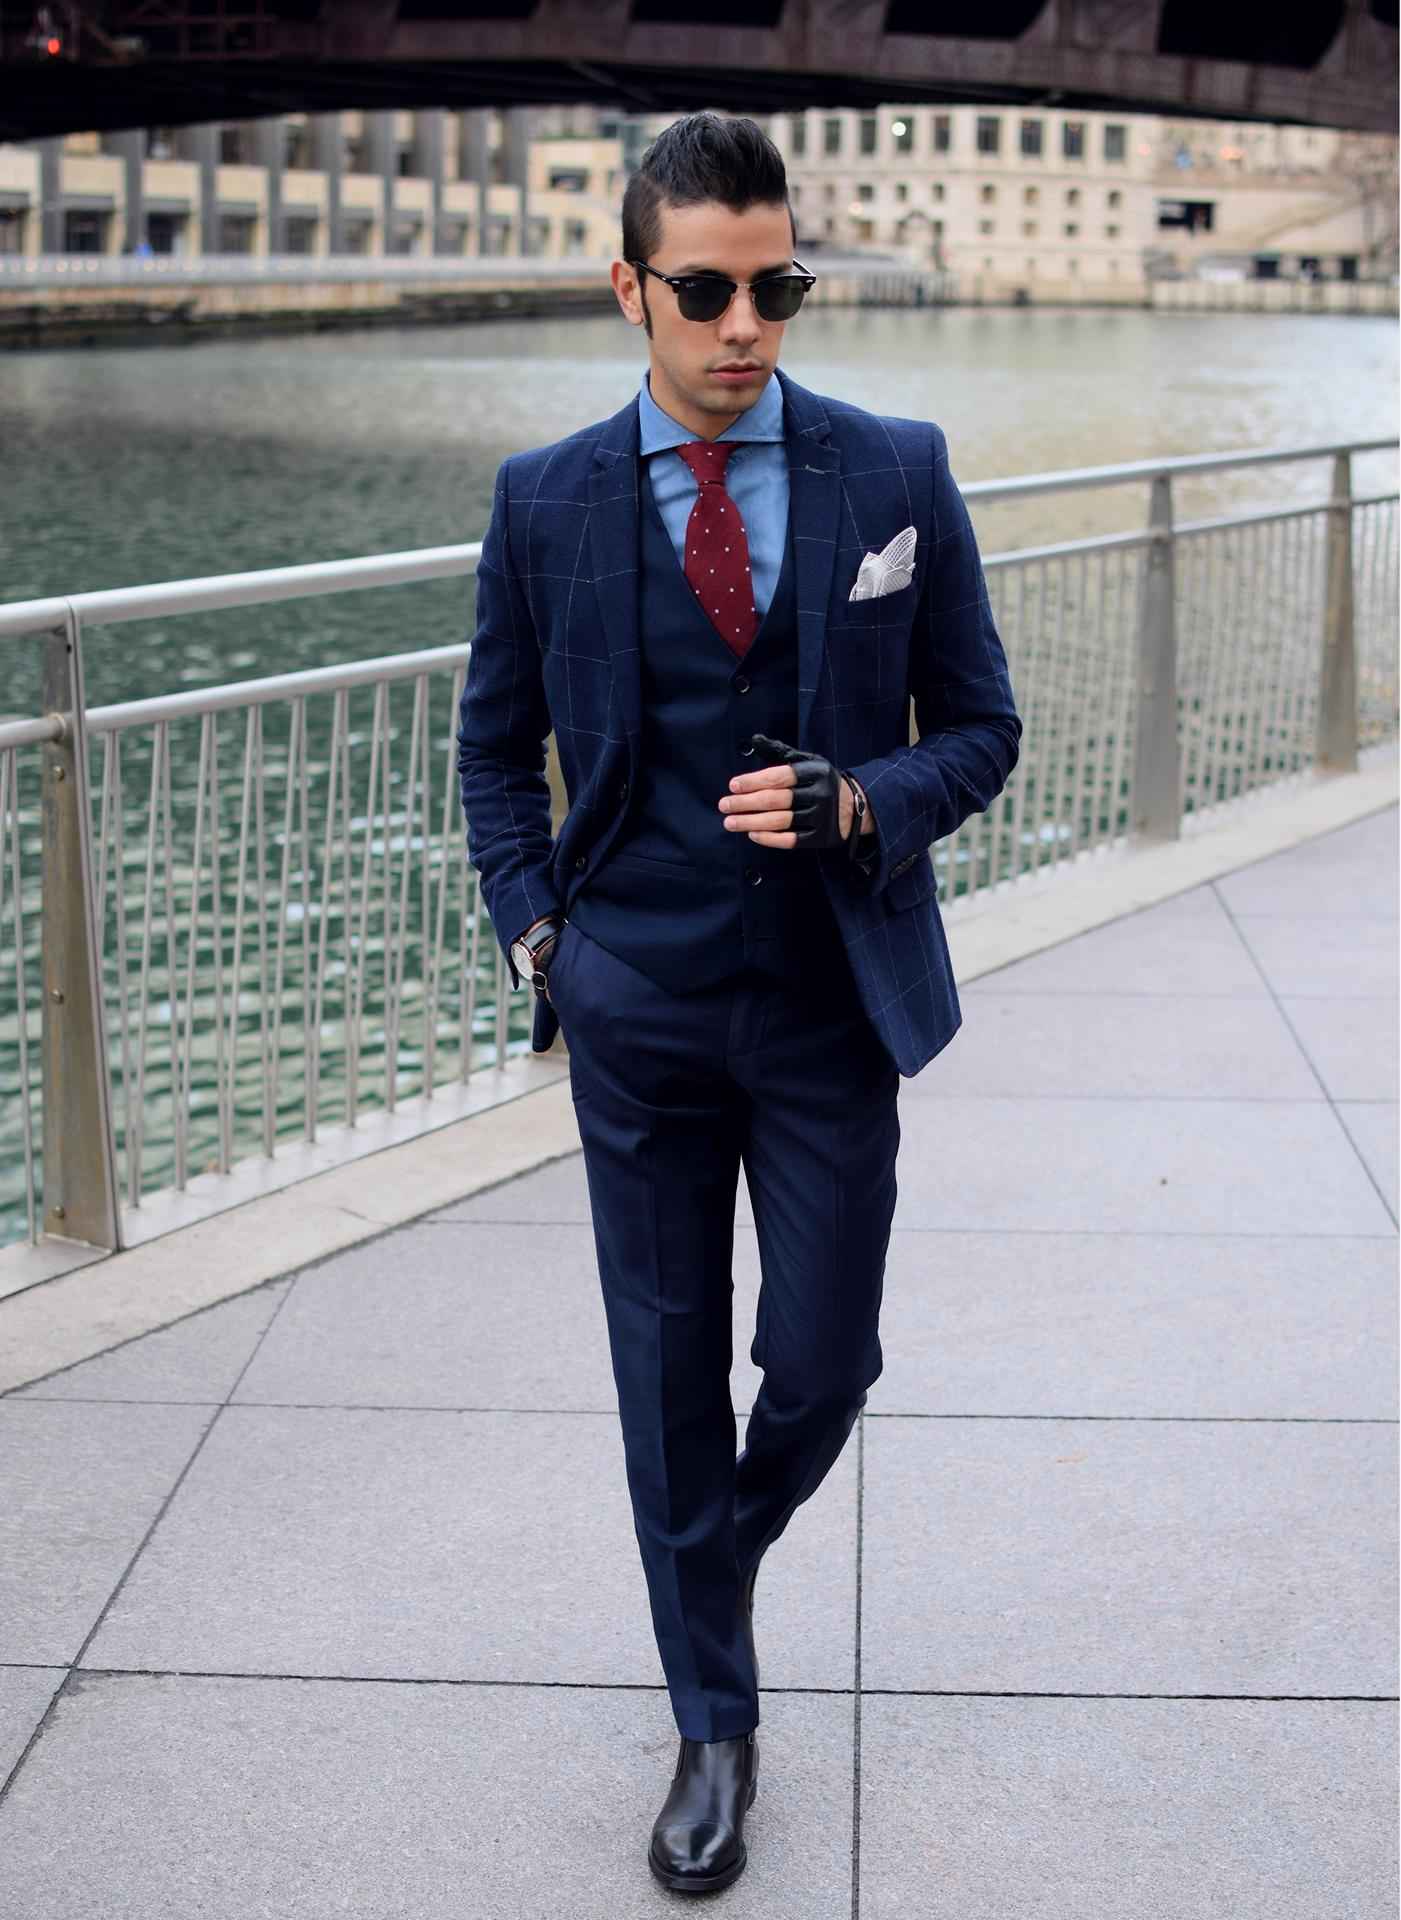 How To Wear Navy Dress Pants With a Burgundy Tie | Men's Fashion